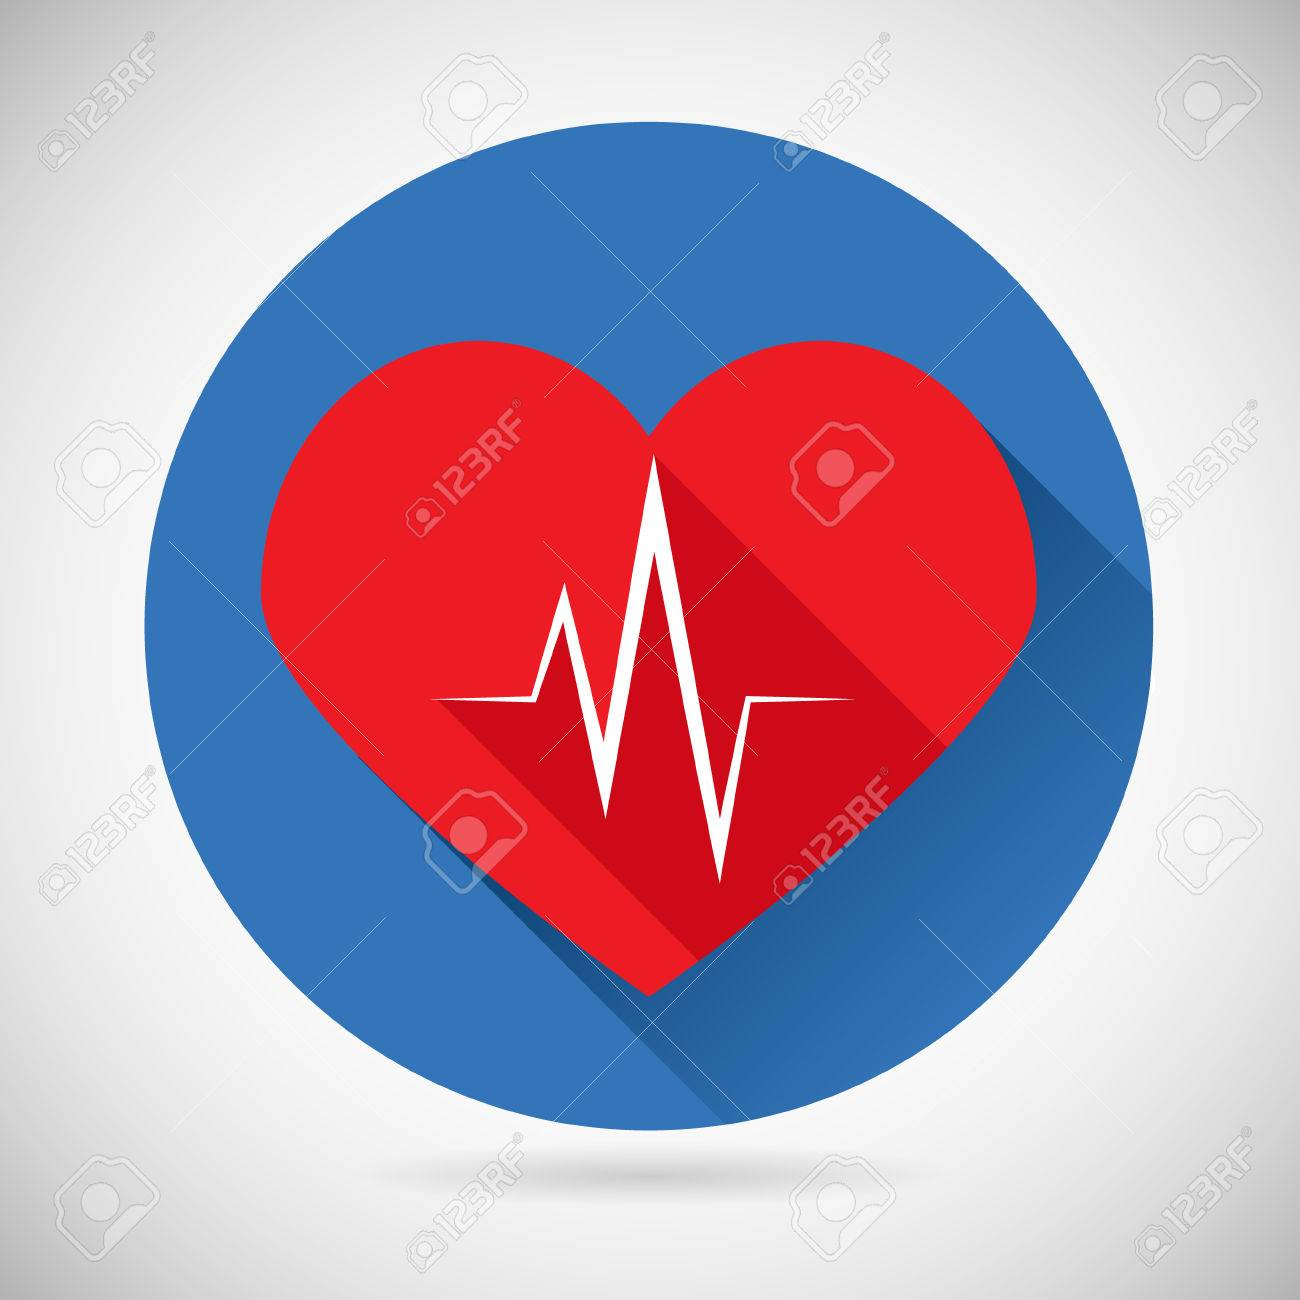 Healthcare And Medical Care Symbol Heart Beat Rate Icon Design – Heart Rate Chart Template